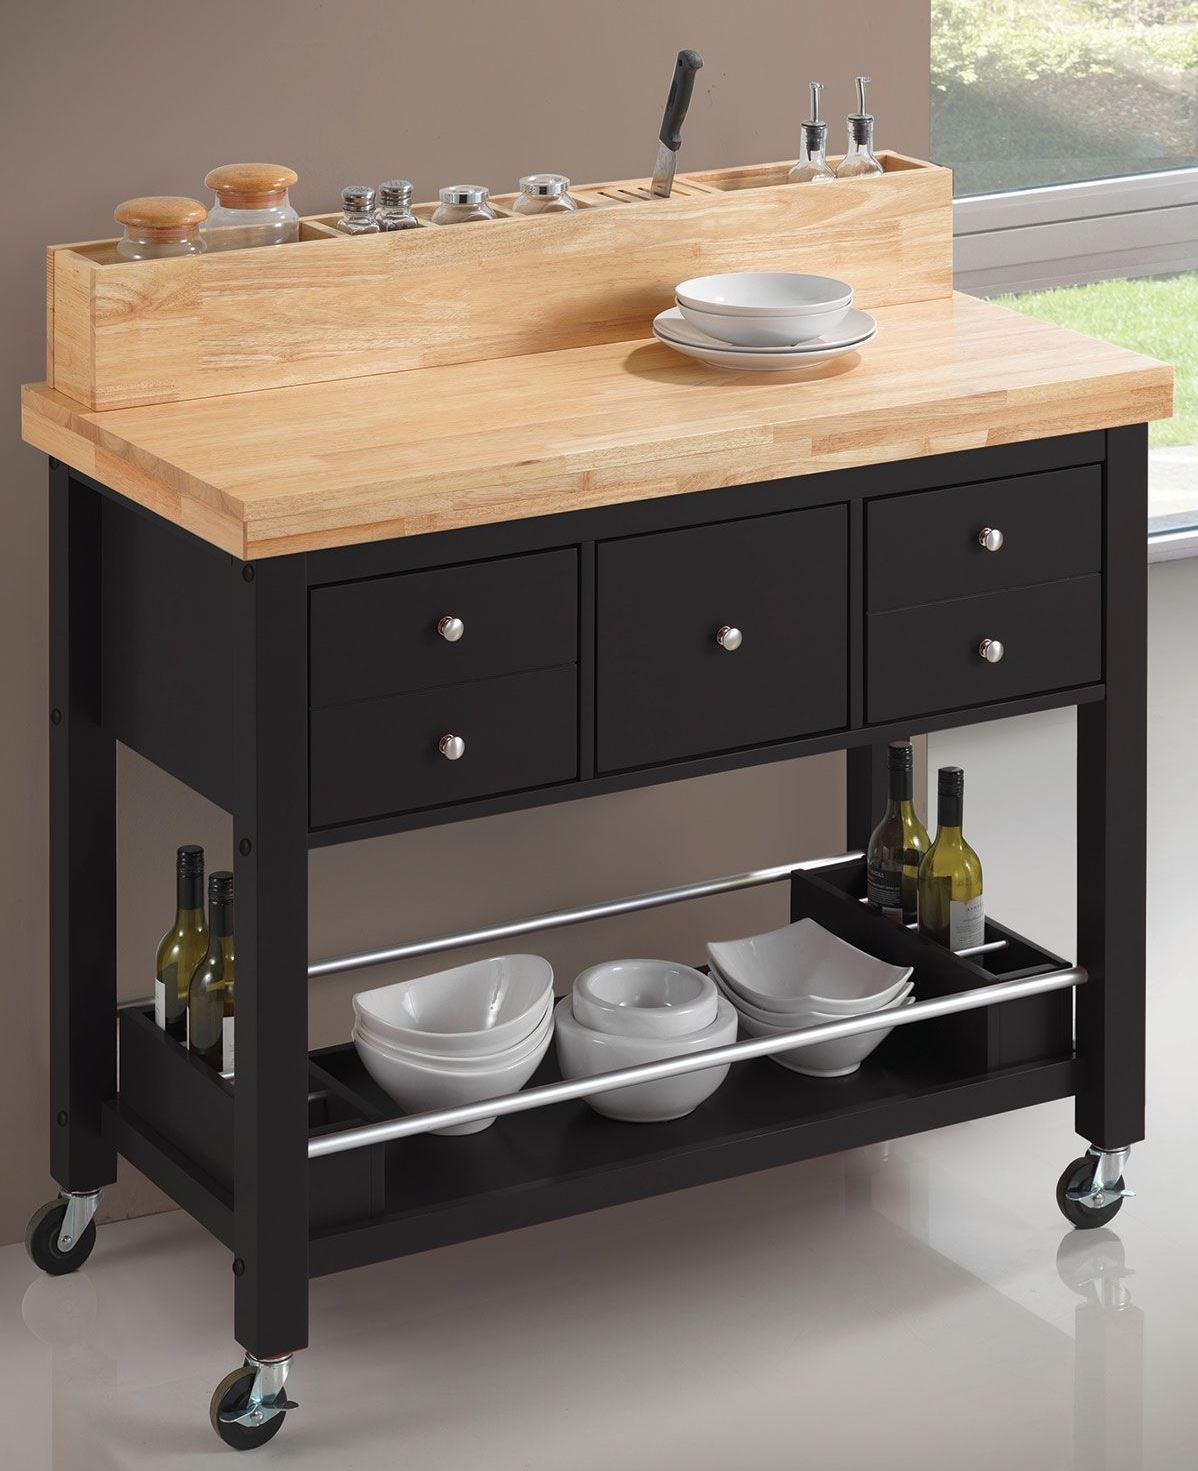 Coaster Kitchen Carts Natural and Black Kitchen Island